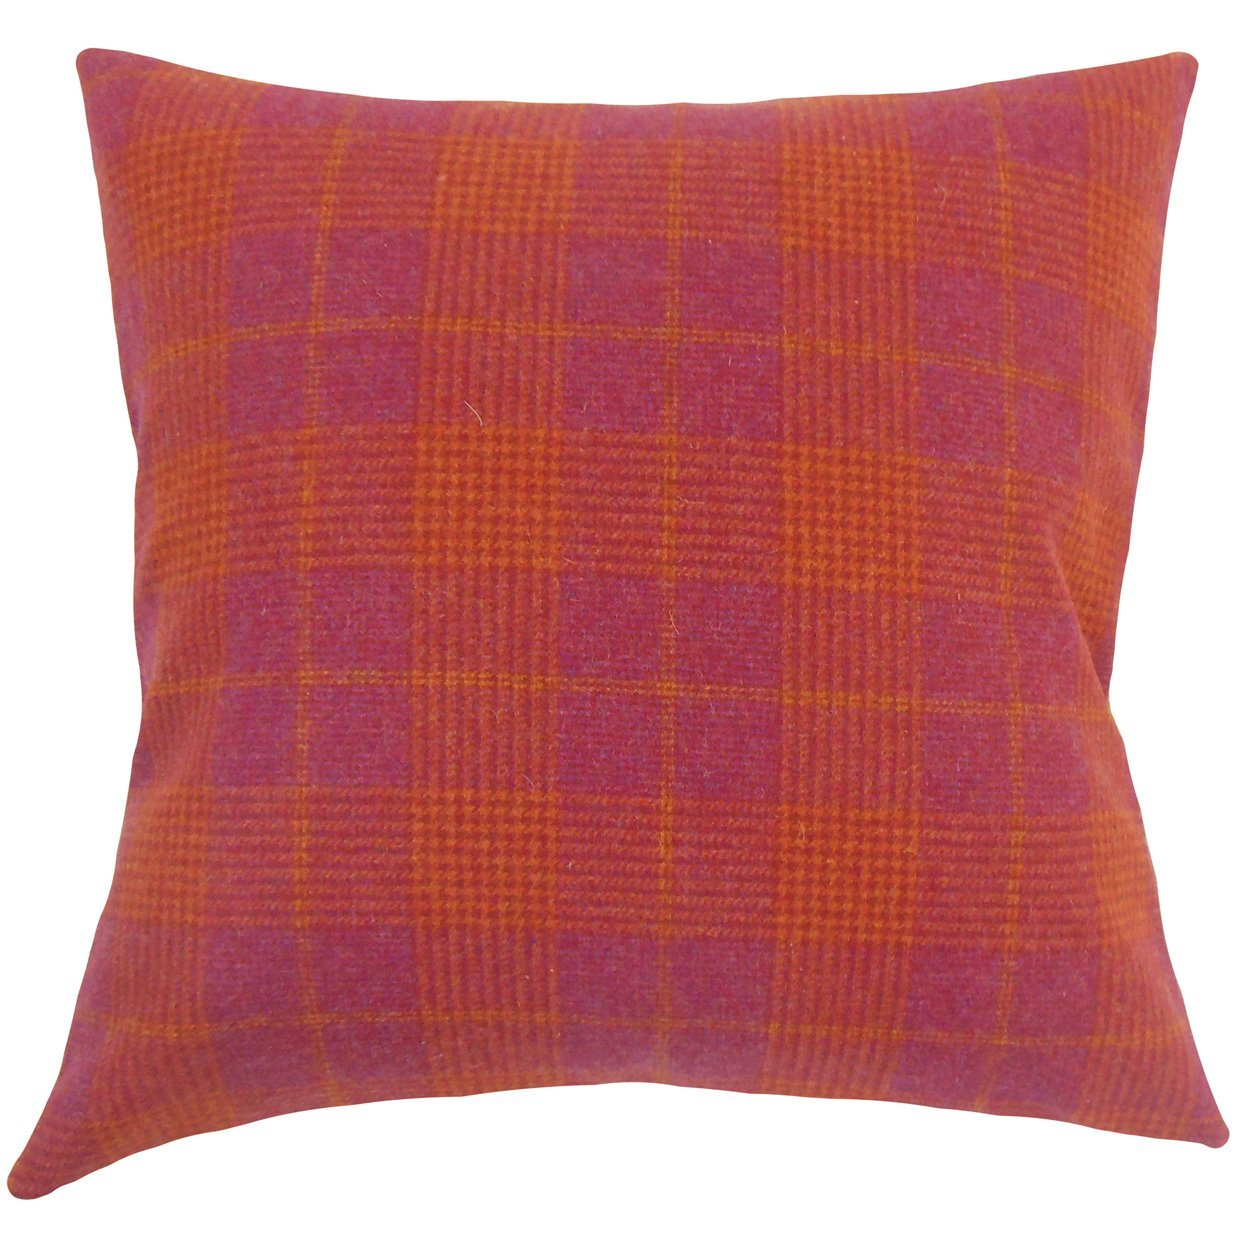 The Pillow Collection Felician Plaid Bedding Sham Pink King//20 x 36